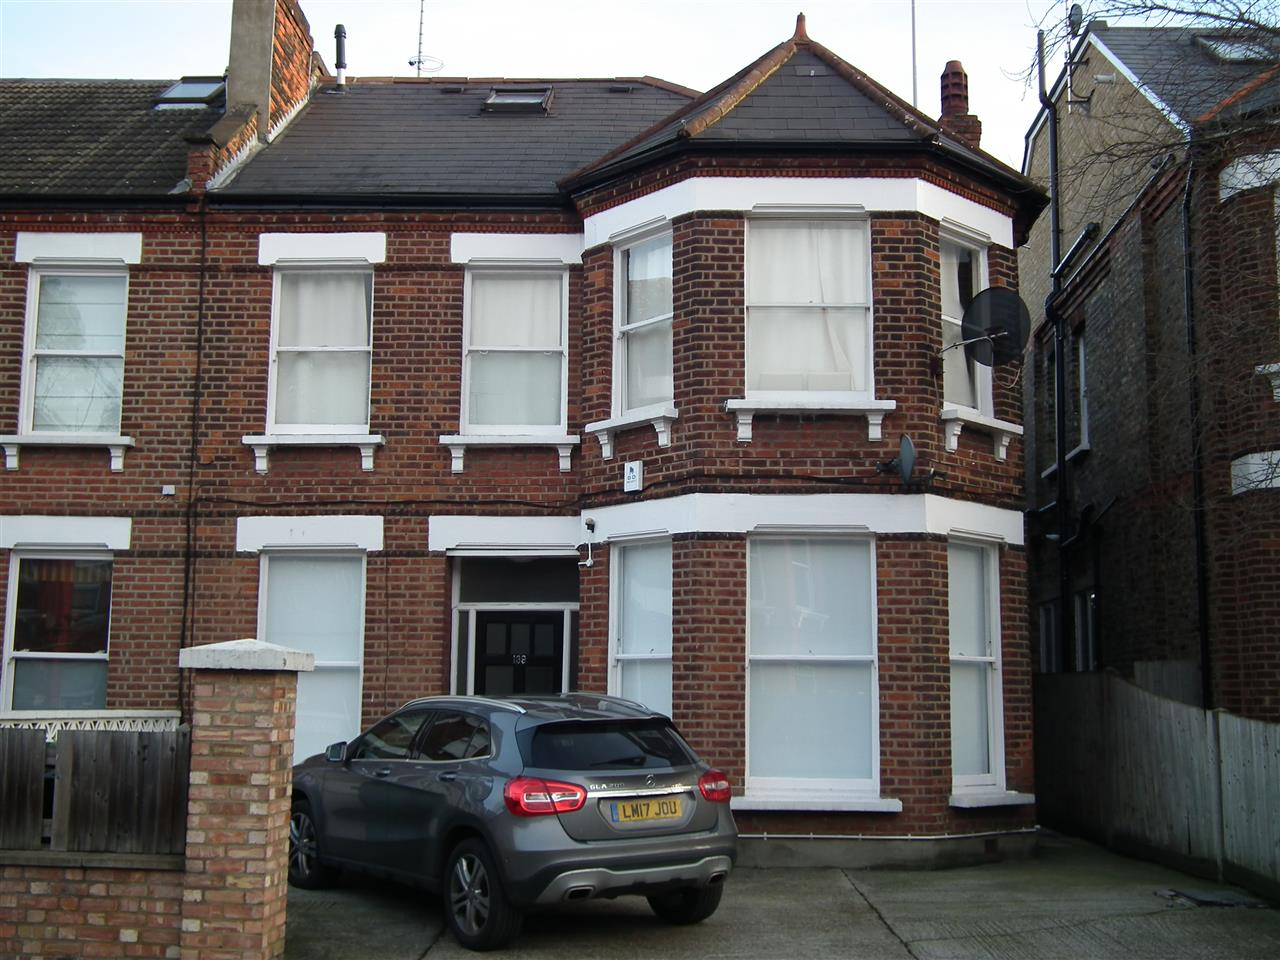 4 bed flat to rent in Fordwych Road, London, NW2